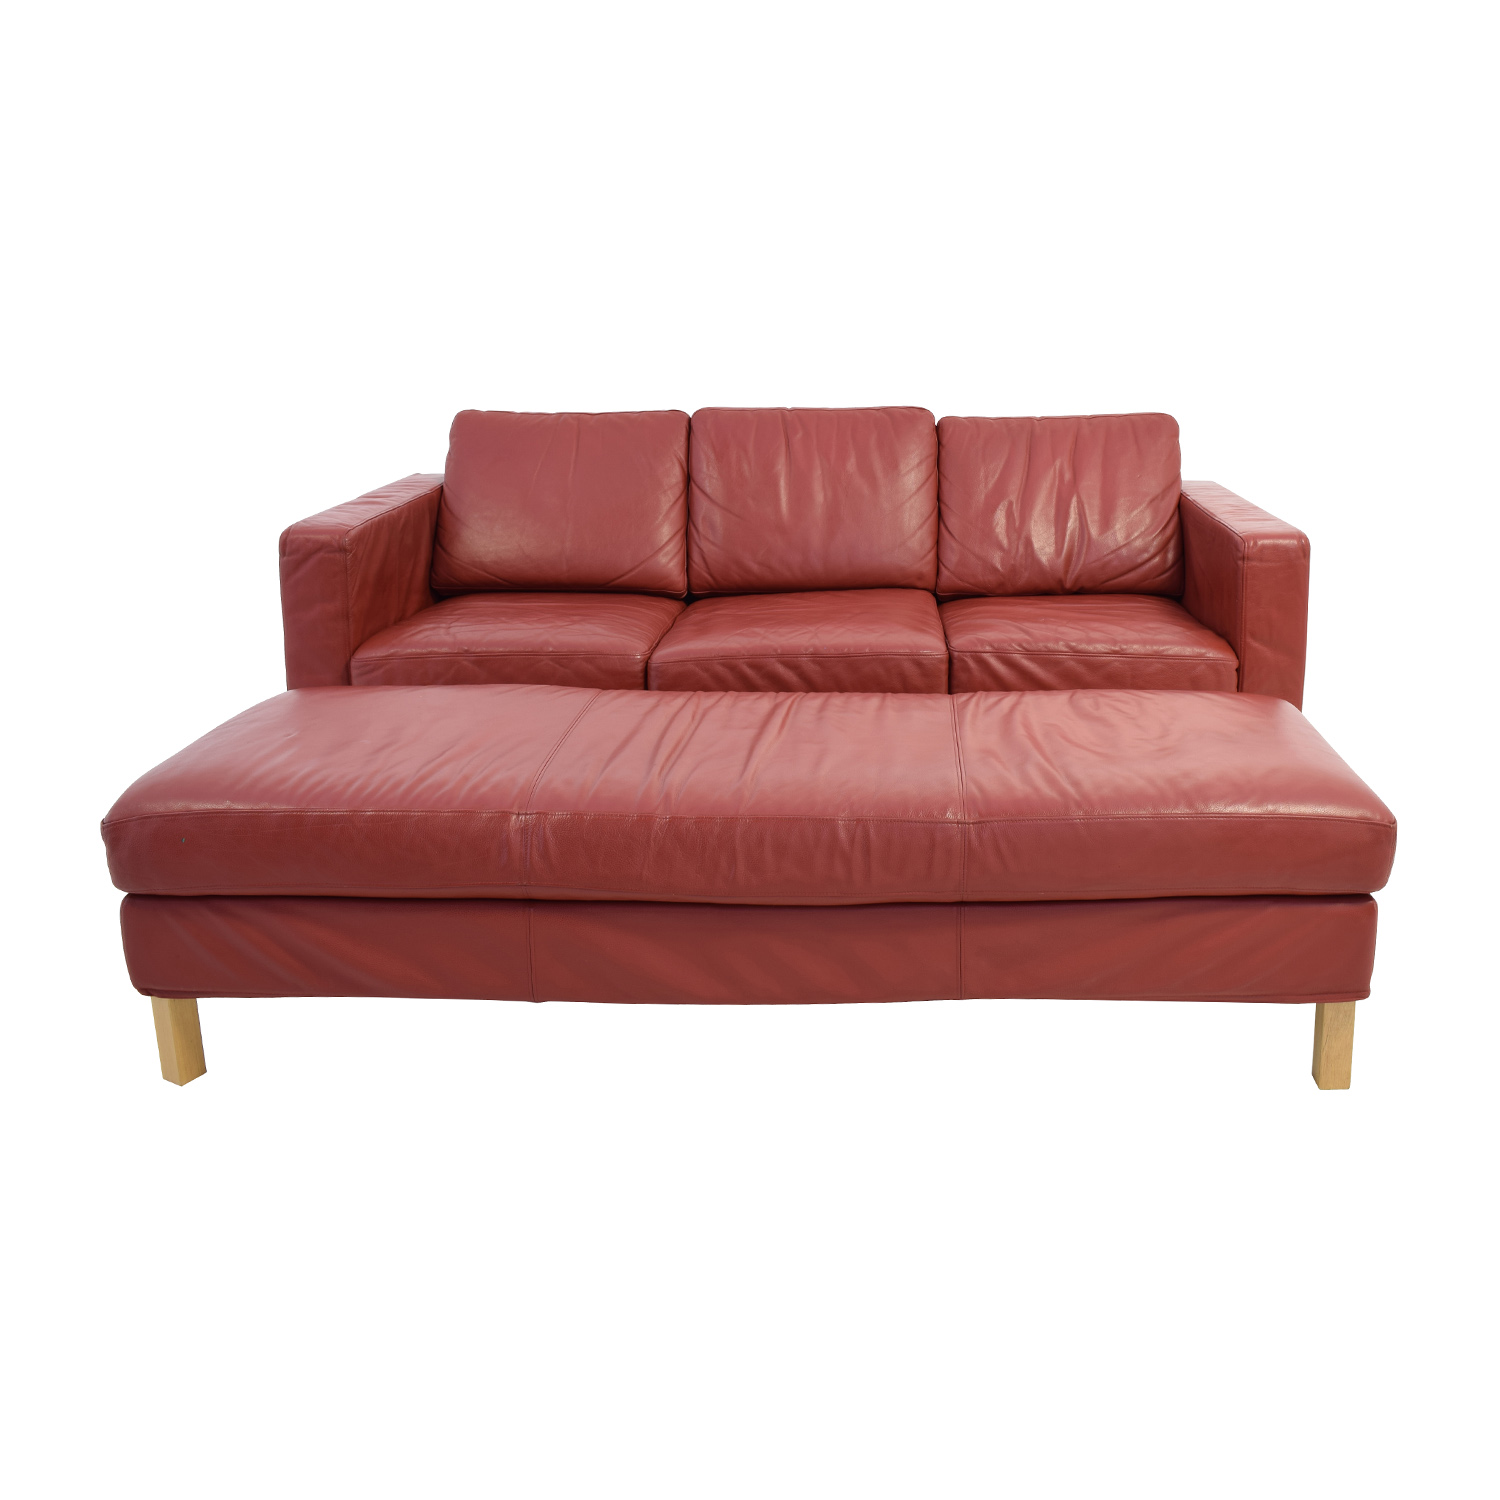 83% OFF - Contemporary Red Leather Couch and Ottoman / Sofas